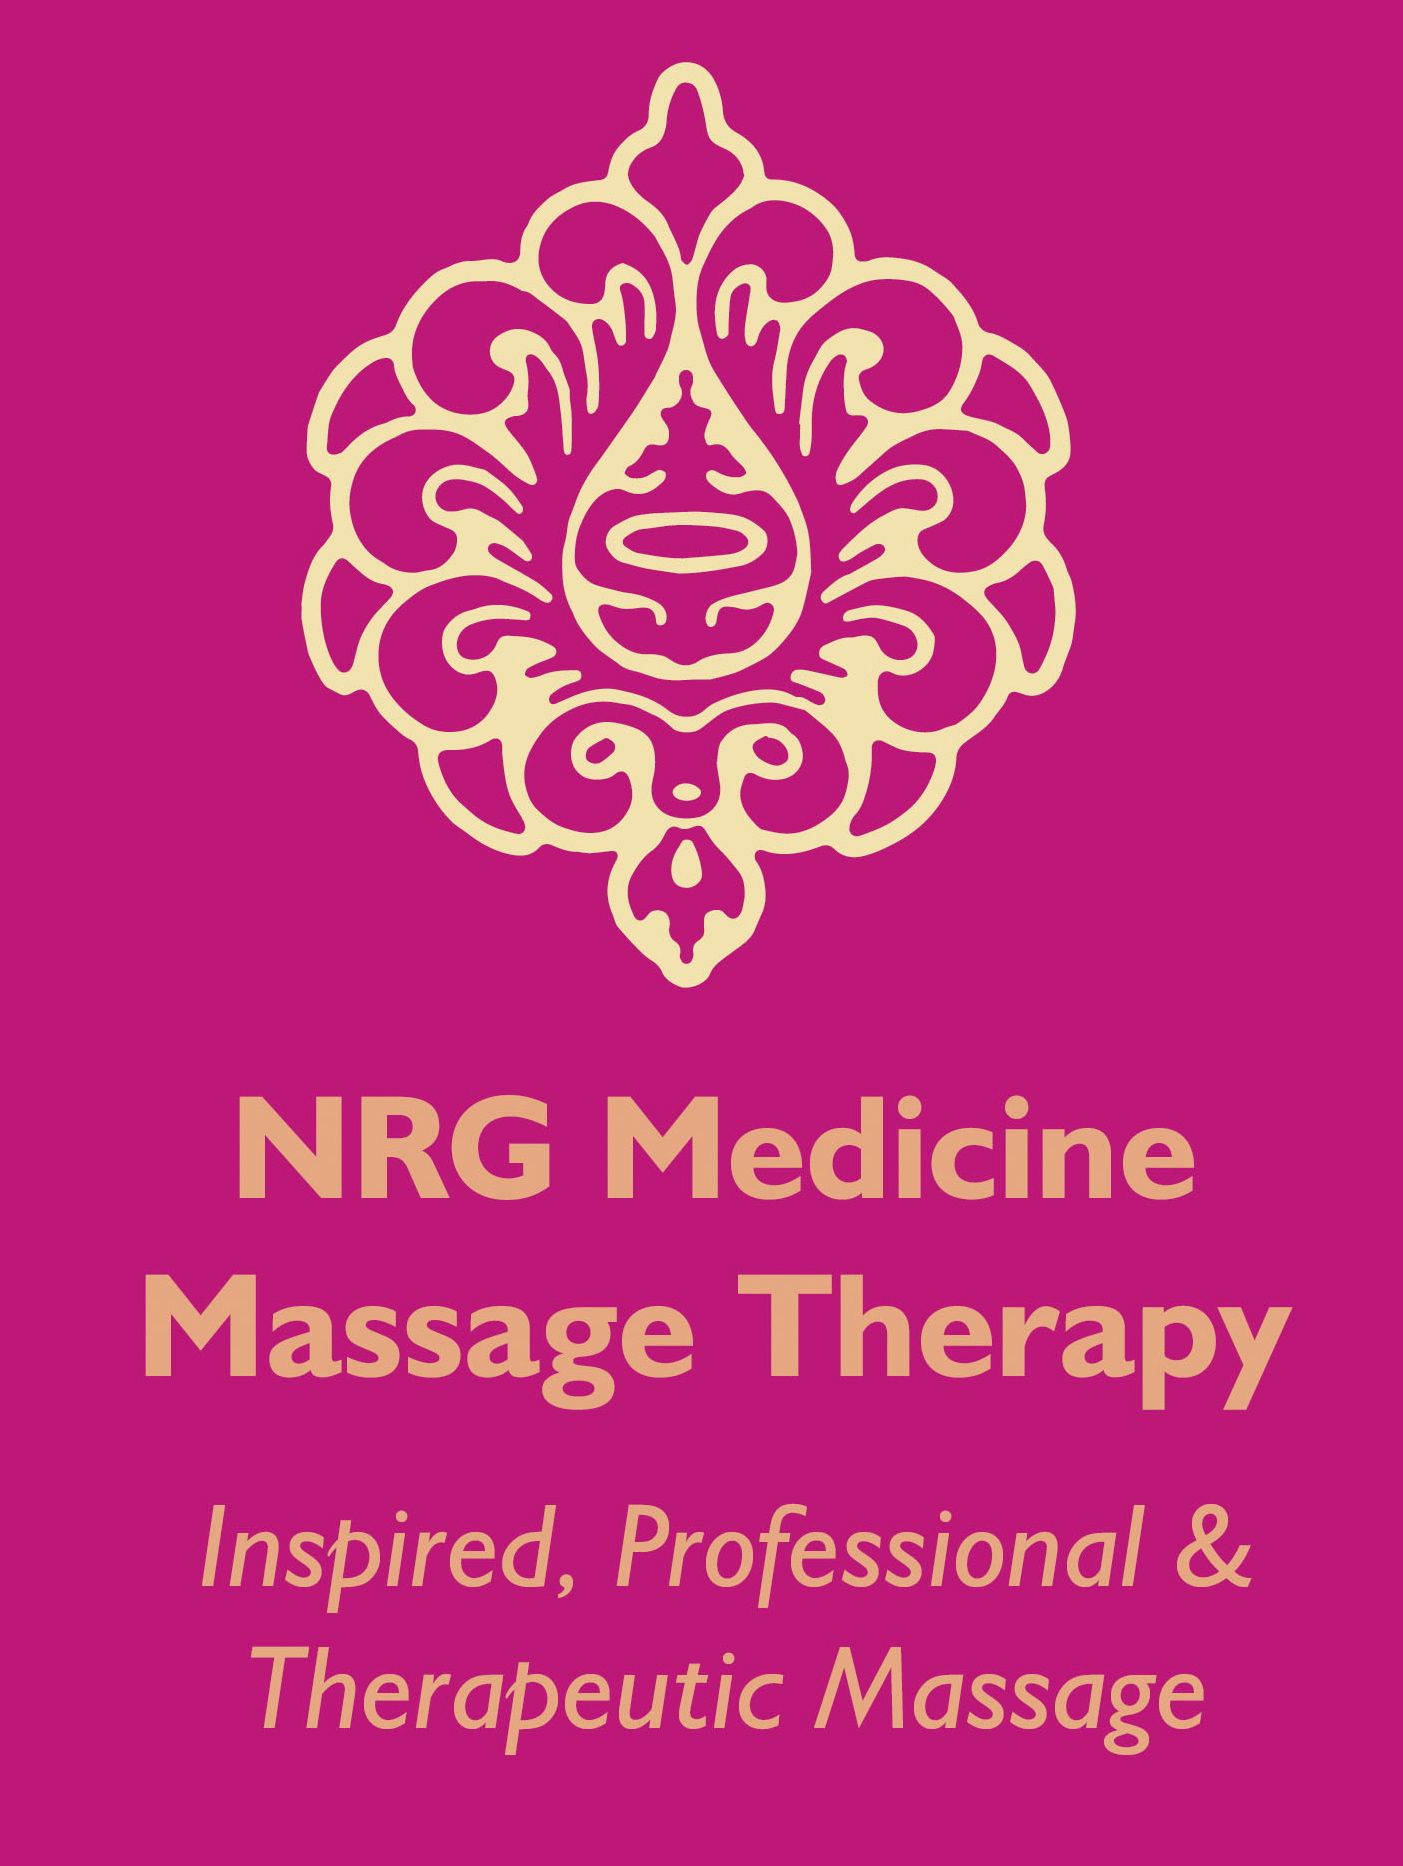 NRG Medicine Massage Therapy